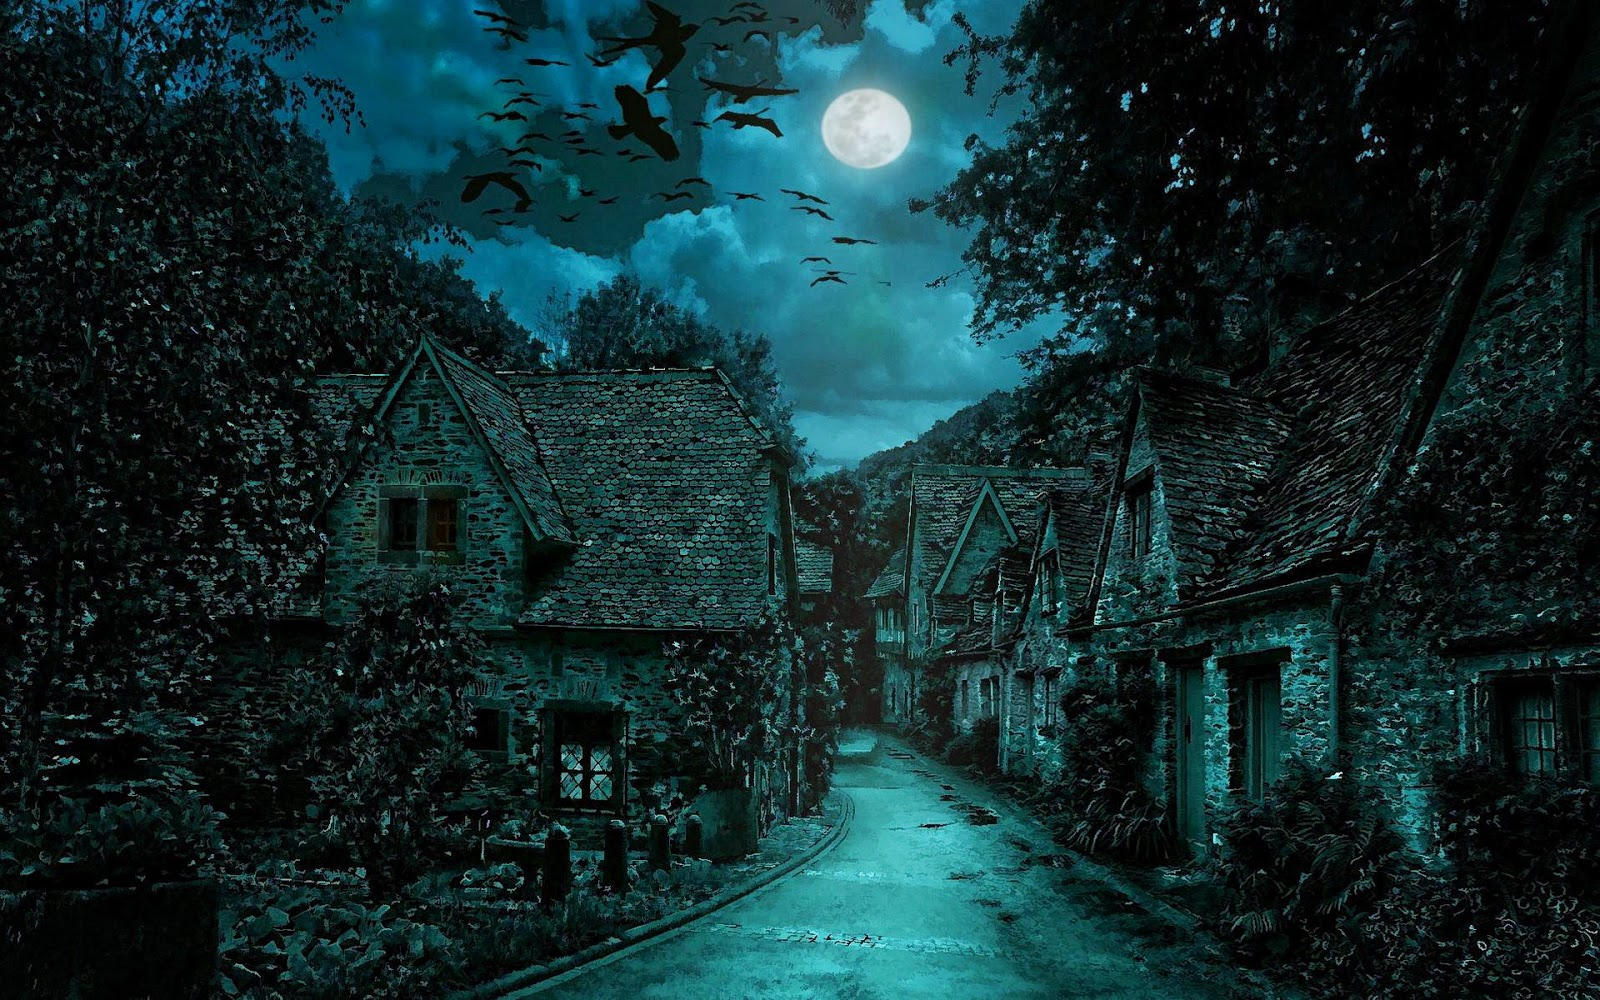 Dark-scary-house-with-crow-on-tree-full-moonlight.jpg